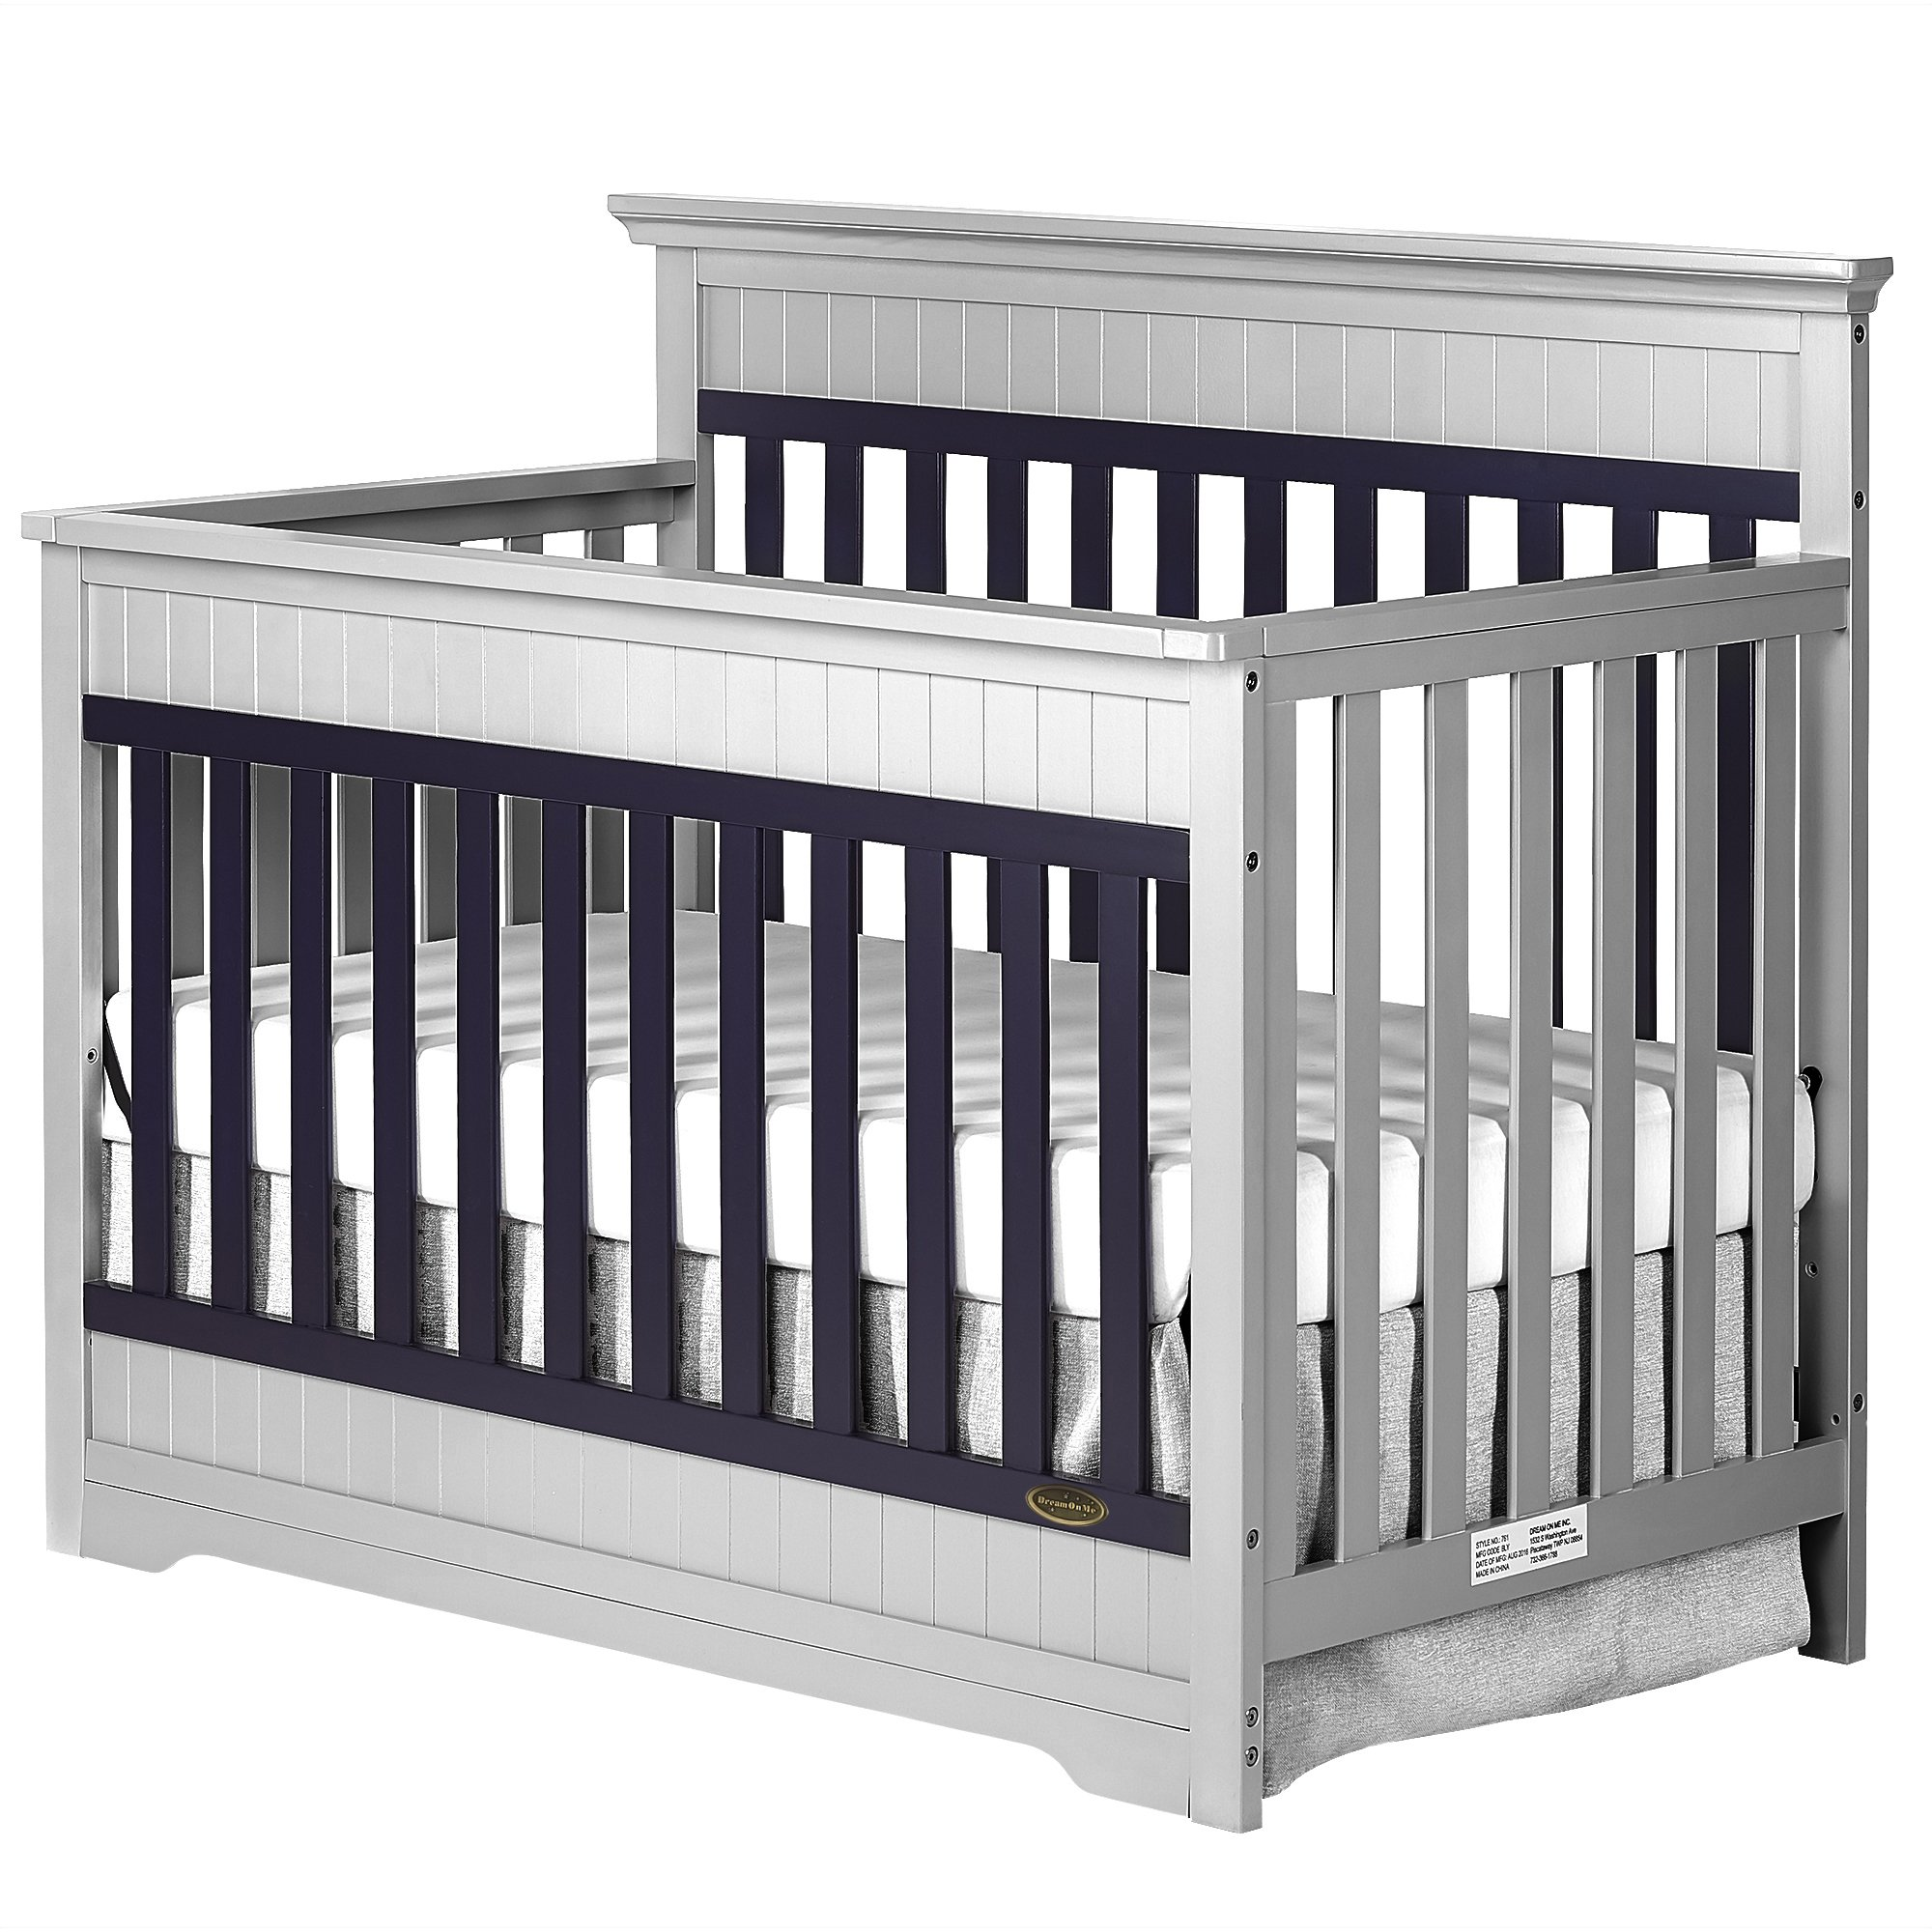 Amazon.com : Dream On Me Universal Convertible Crib ...